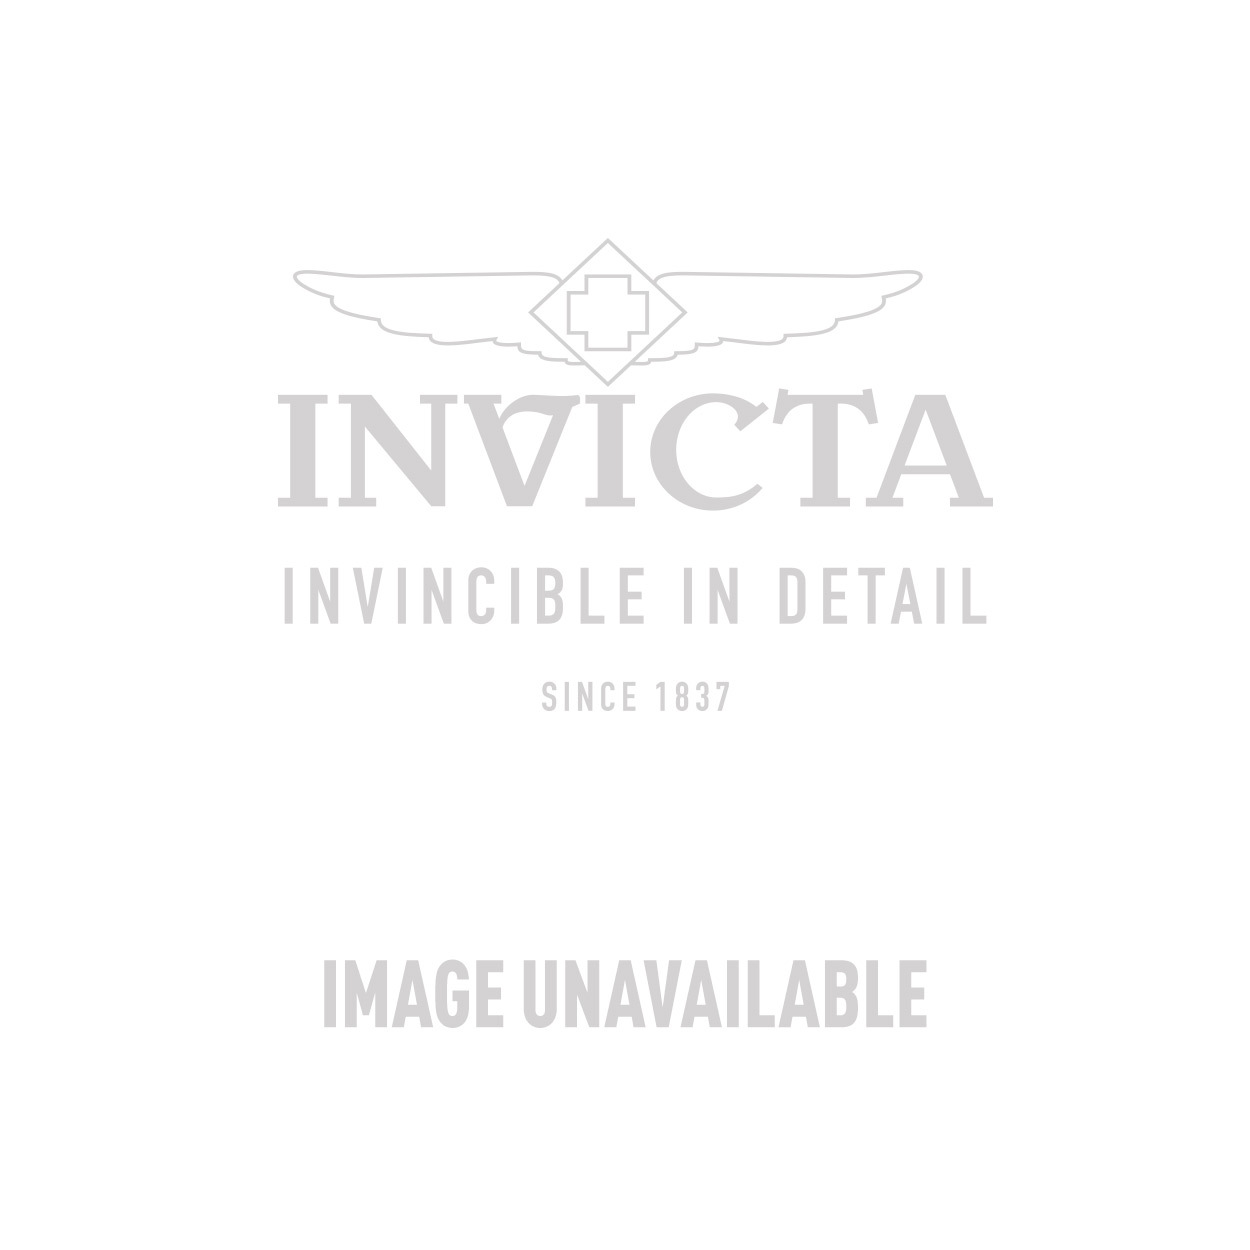 Invicta Artist Swiss Made Quartz Watch - Stainless Steel case Stainless Steel band - Model 19856